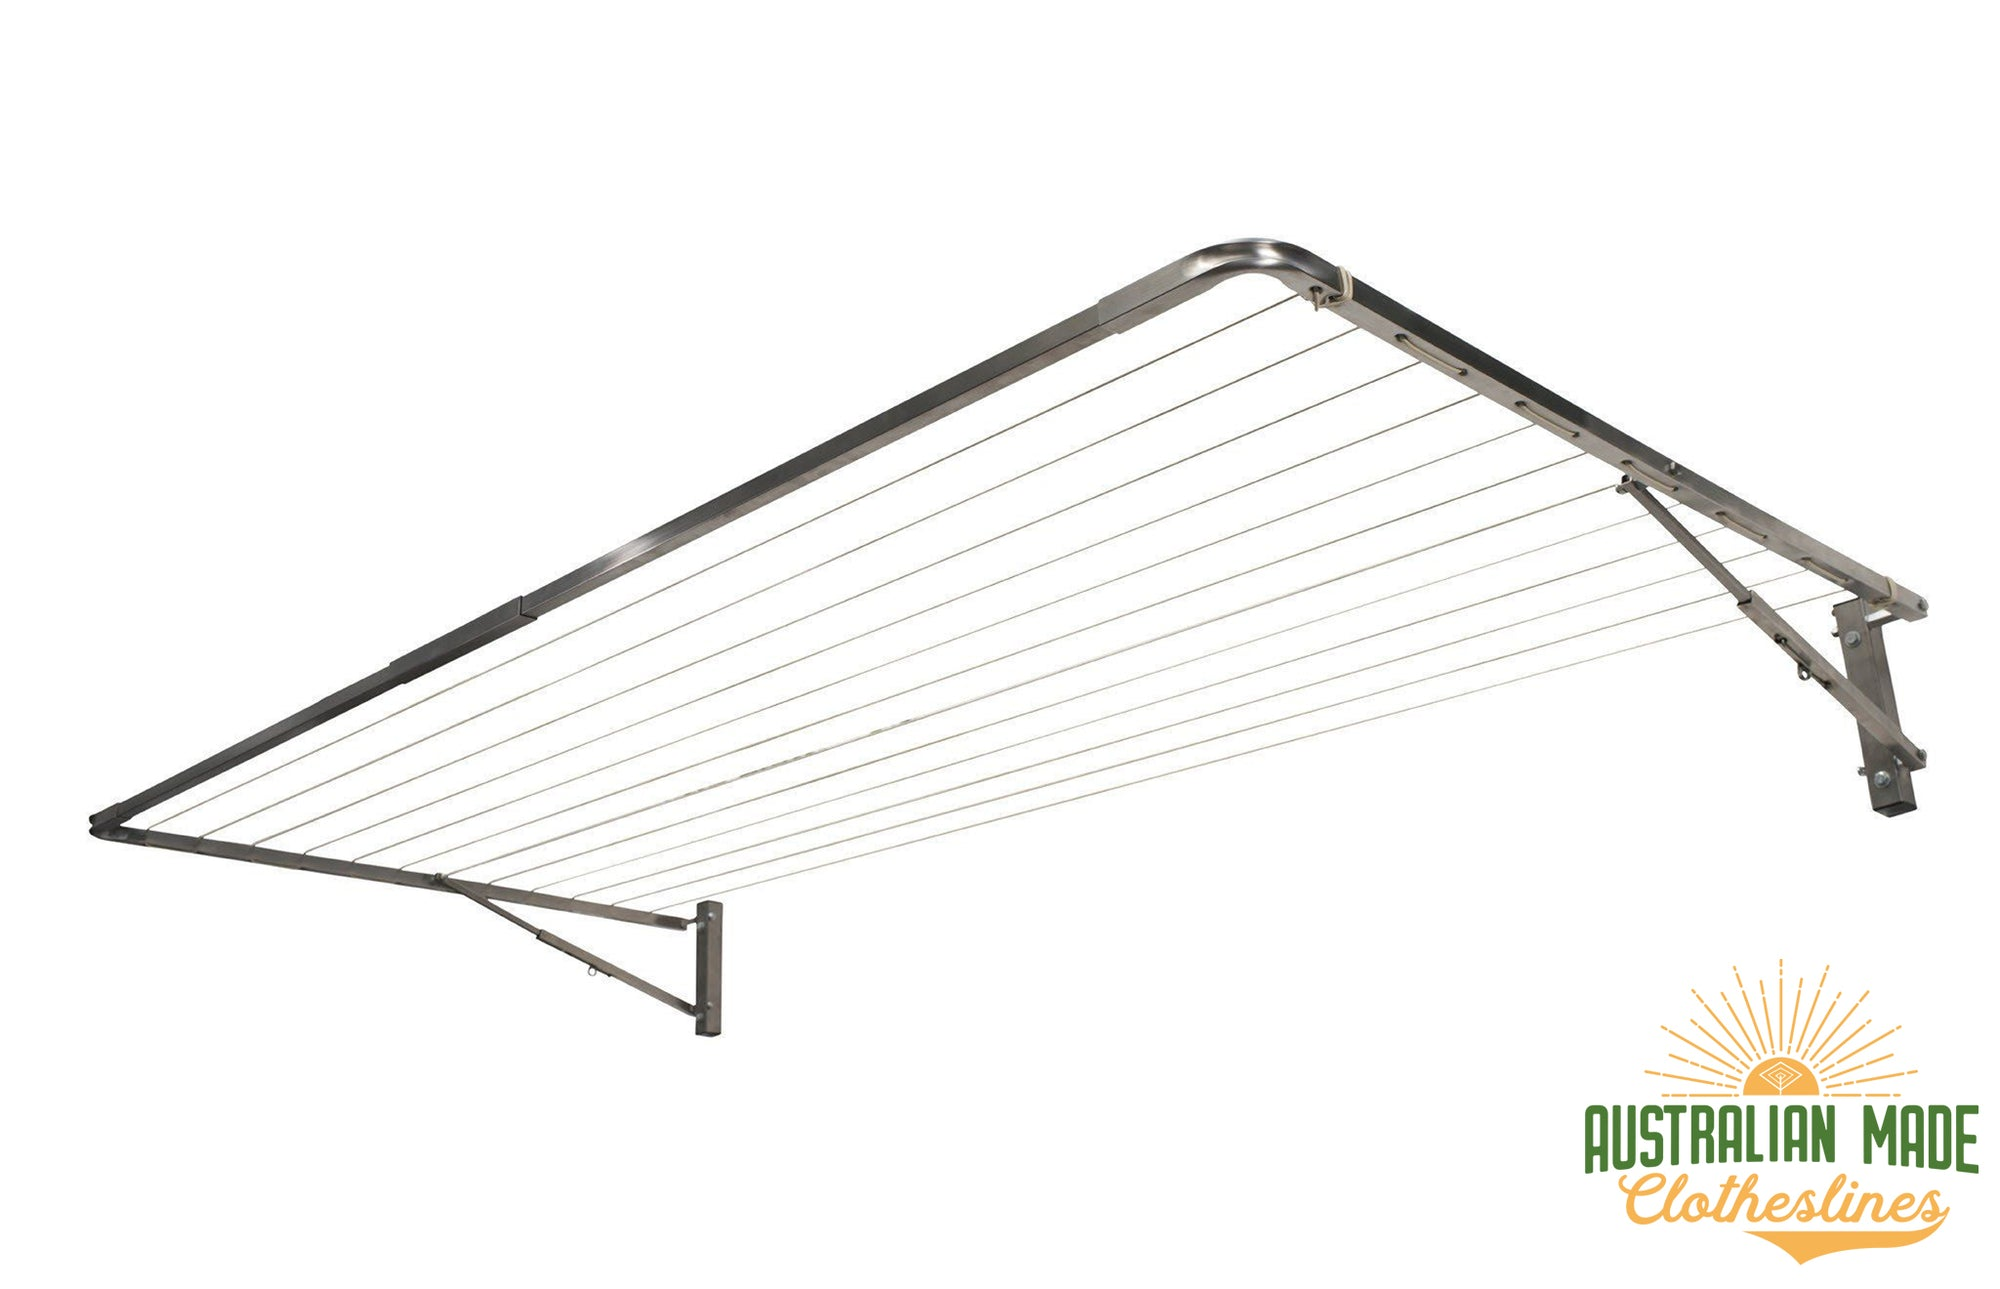 Eco 120 Stainless Steel Clothesline - Stainless Steel - Australian Made Clotheslines